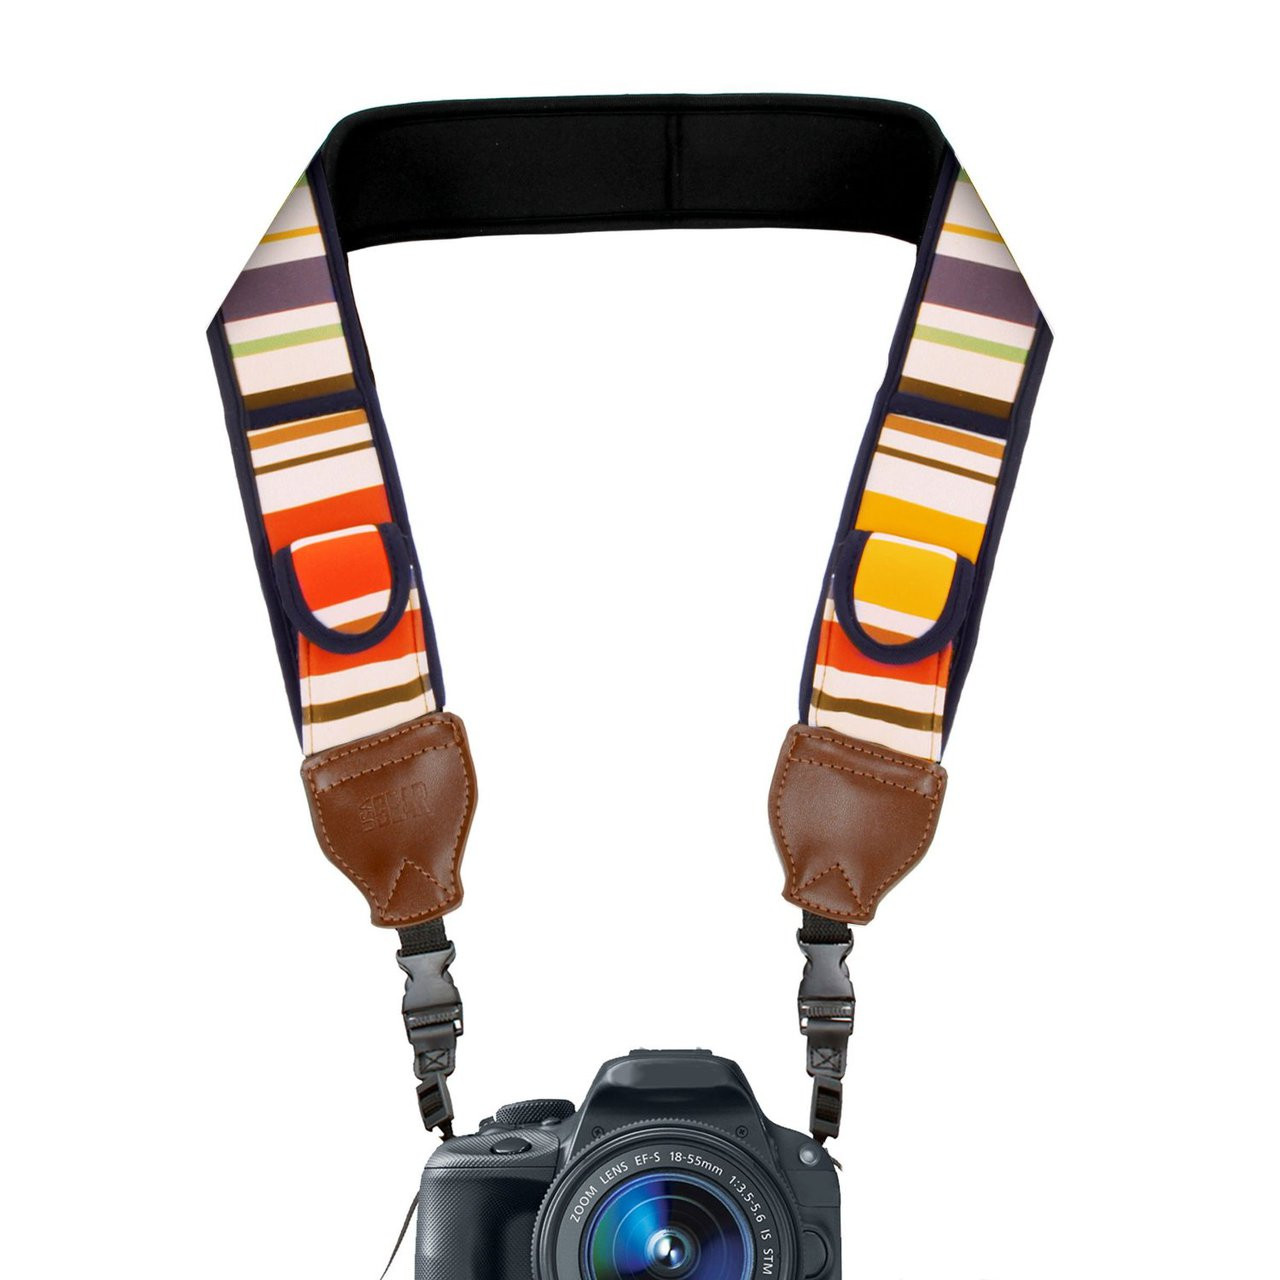 Black Tamrac Quick Release Cotton Strap for DSLR and Mirrorless Cameras